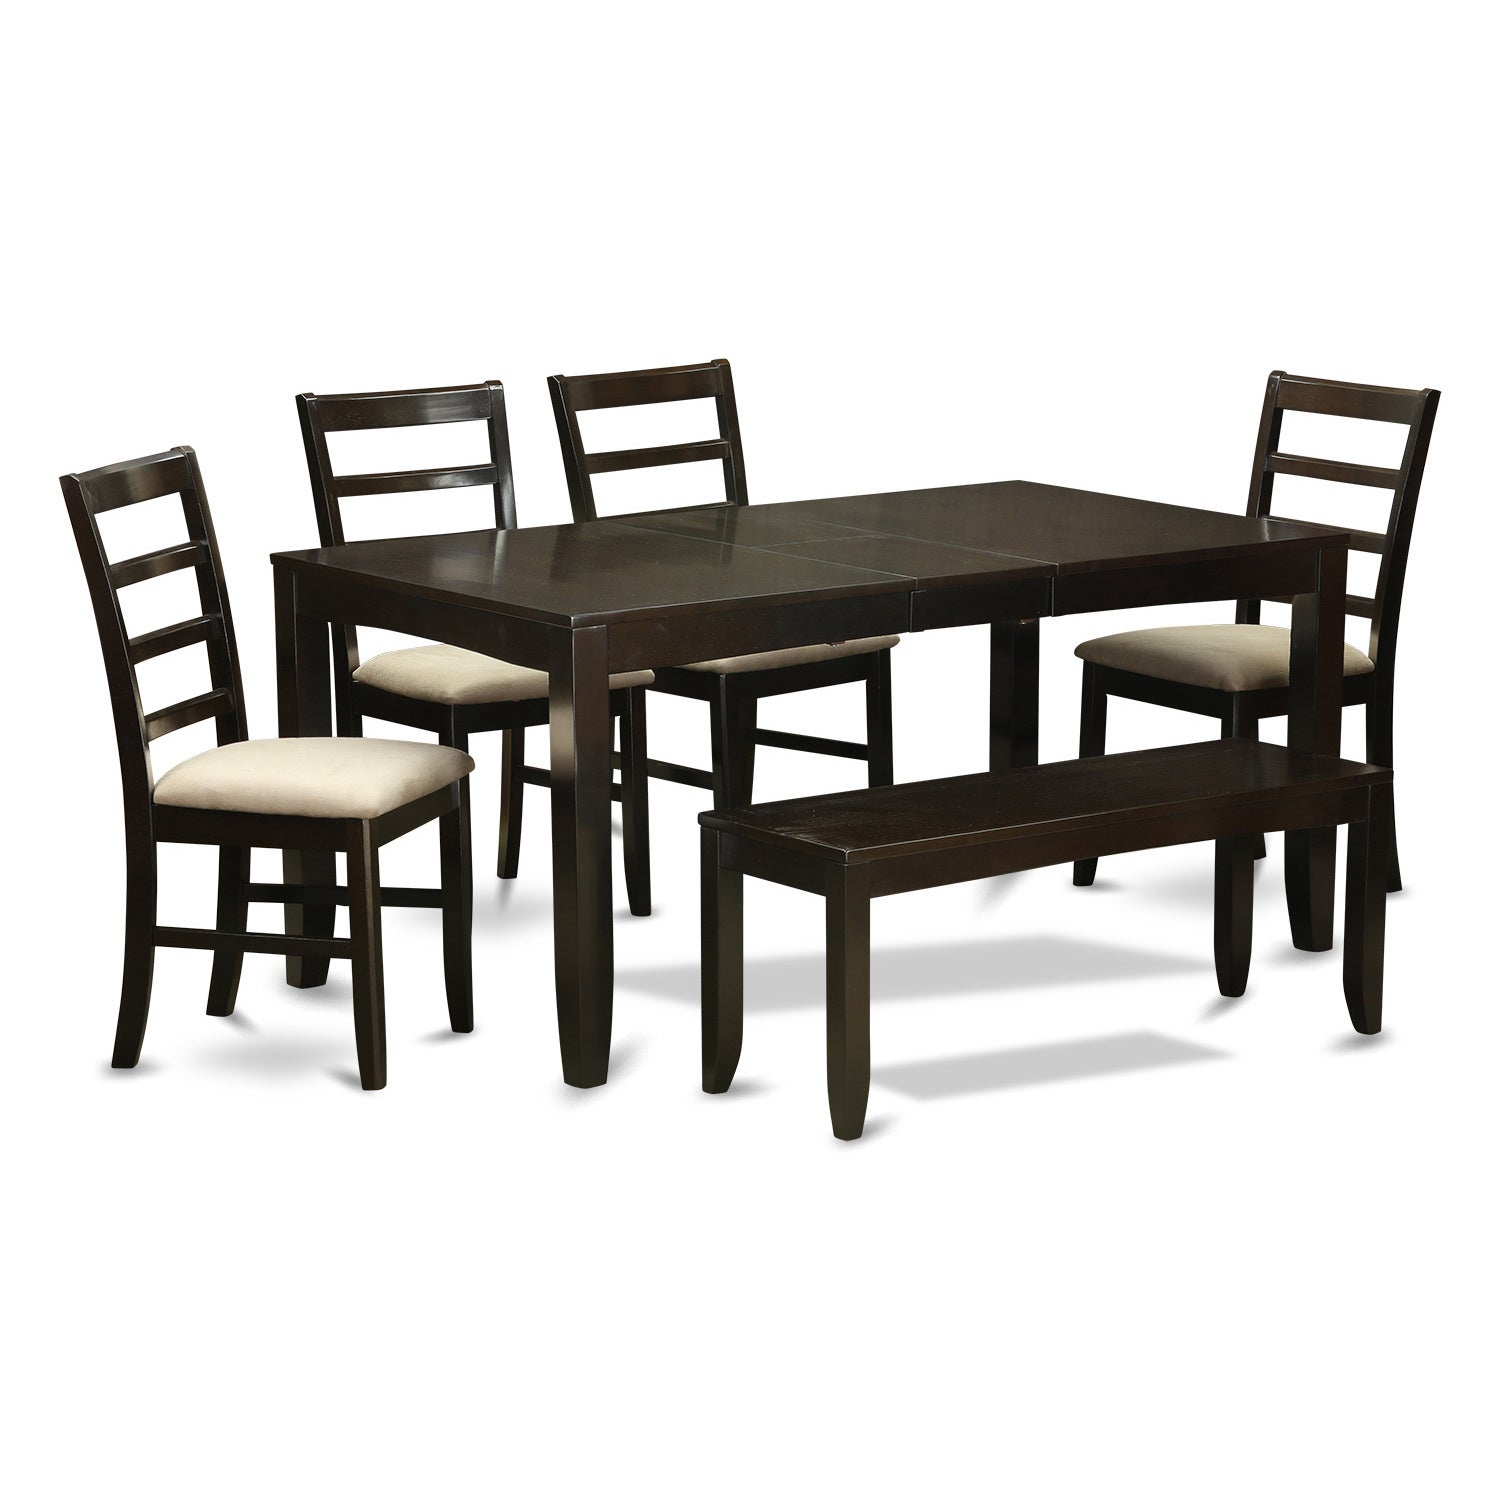 Cuppucino Rubberwood 6-piece Dining Table Set with Leaf a...